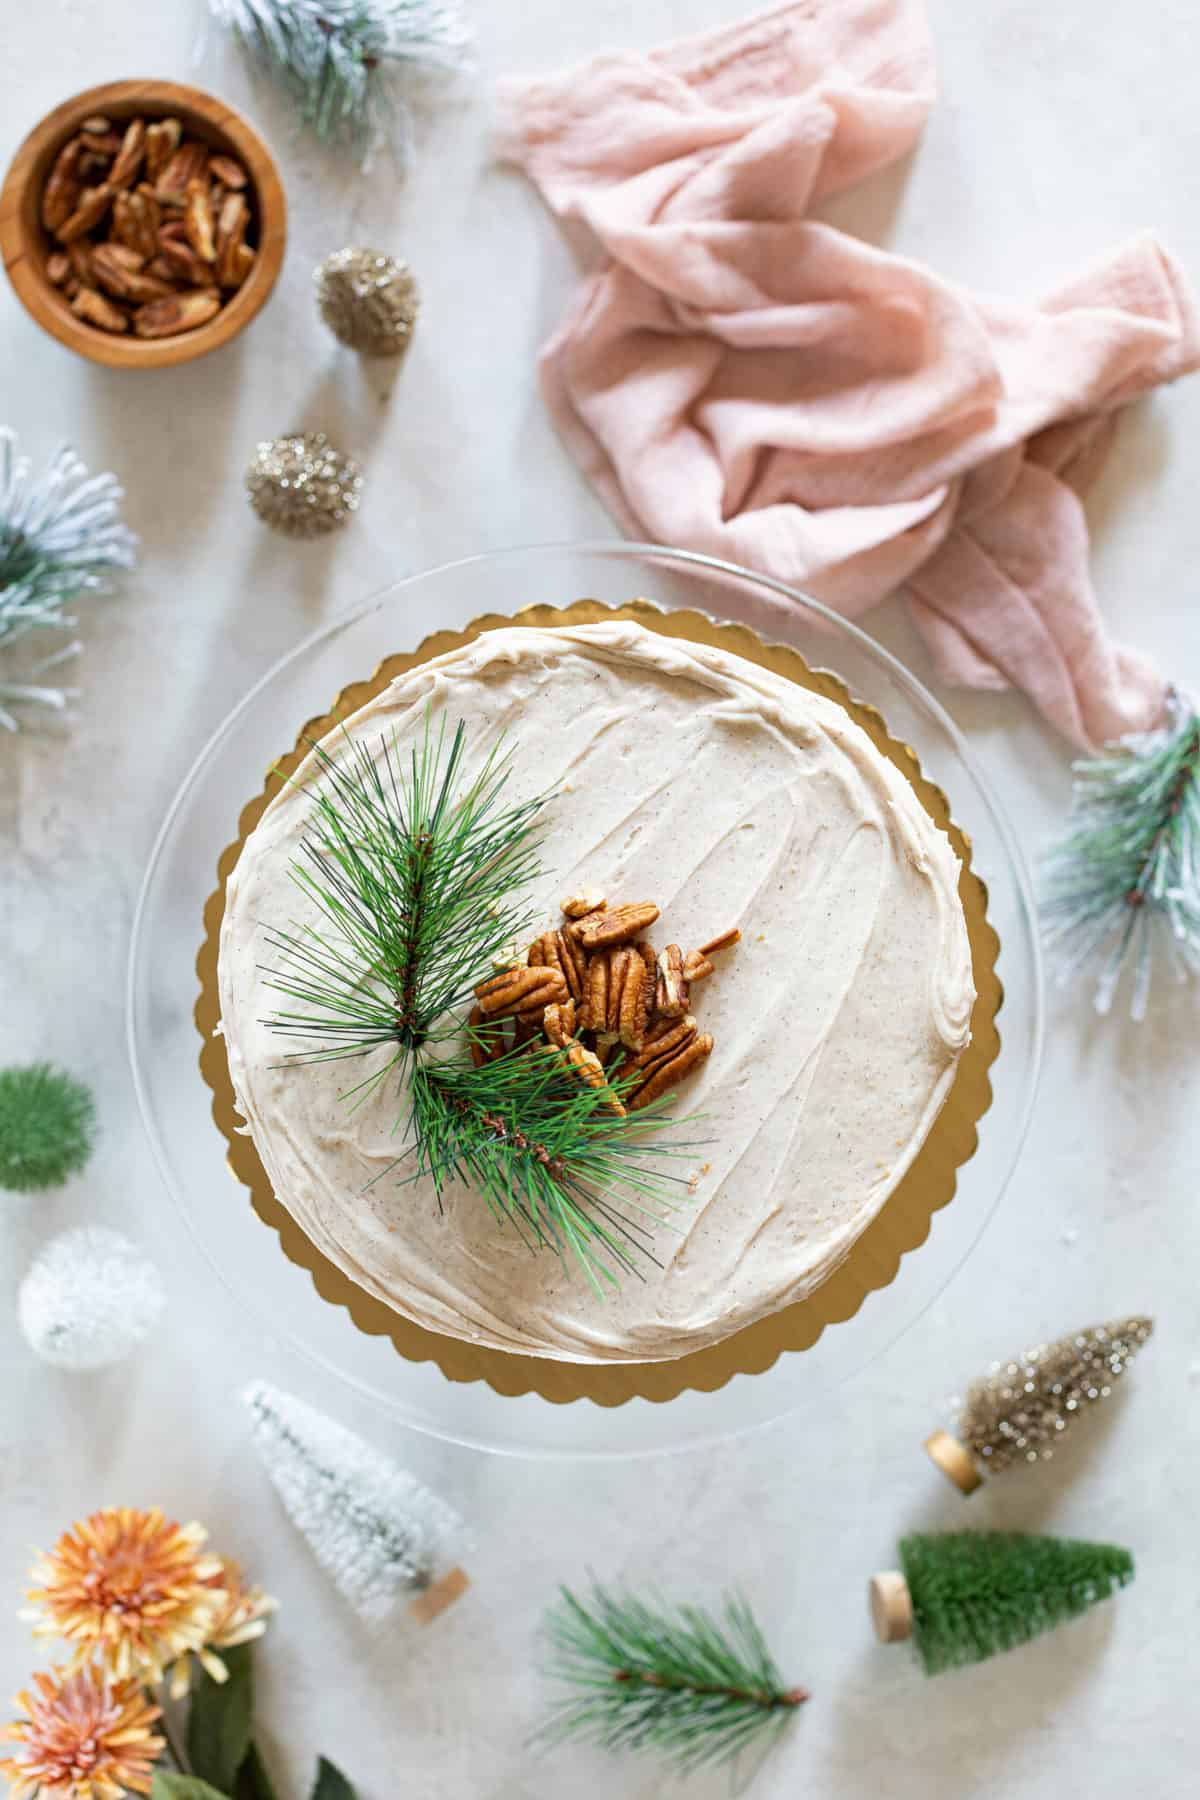 Best Carrot Cake + Chai Cream Cheese Frosting